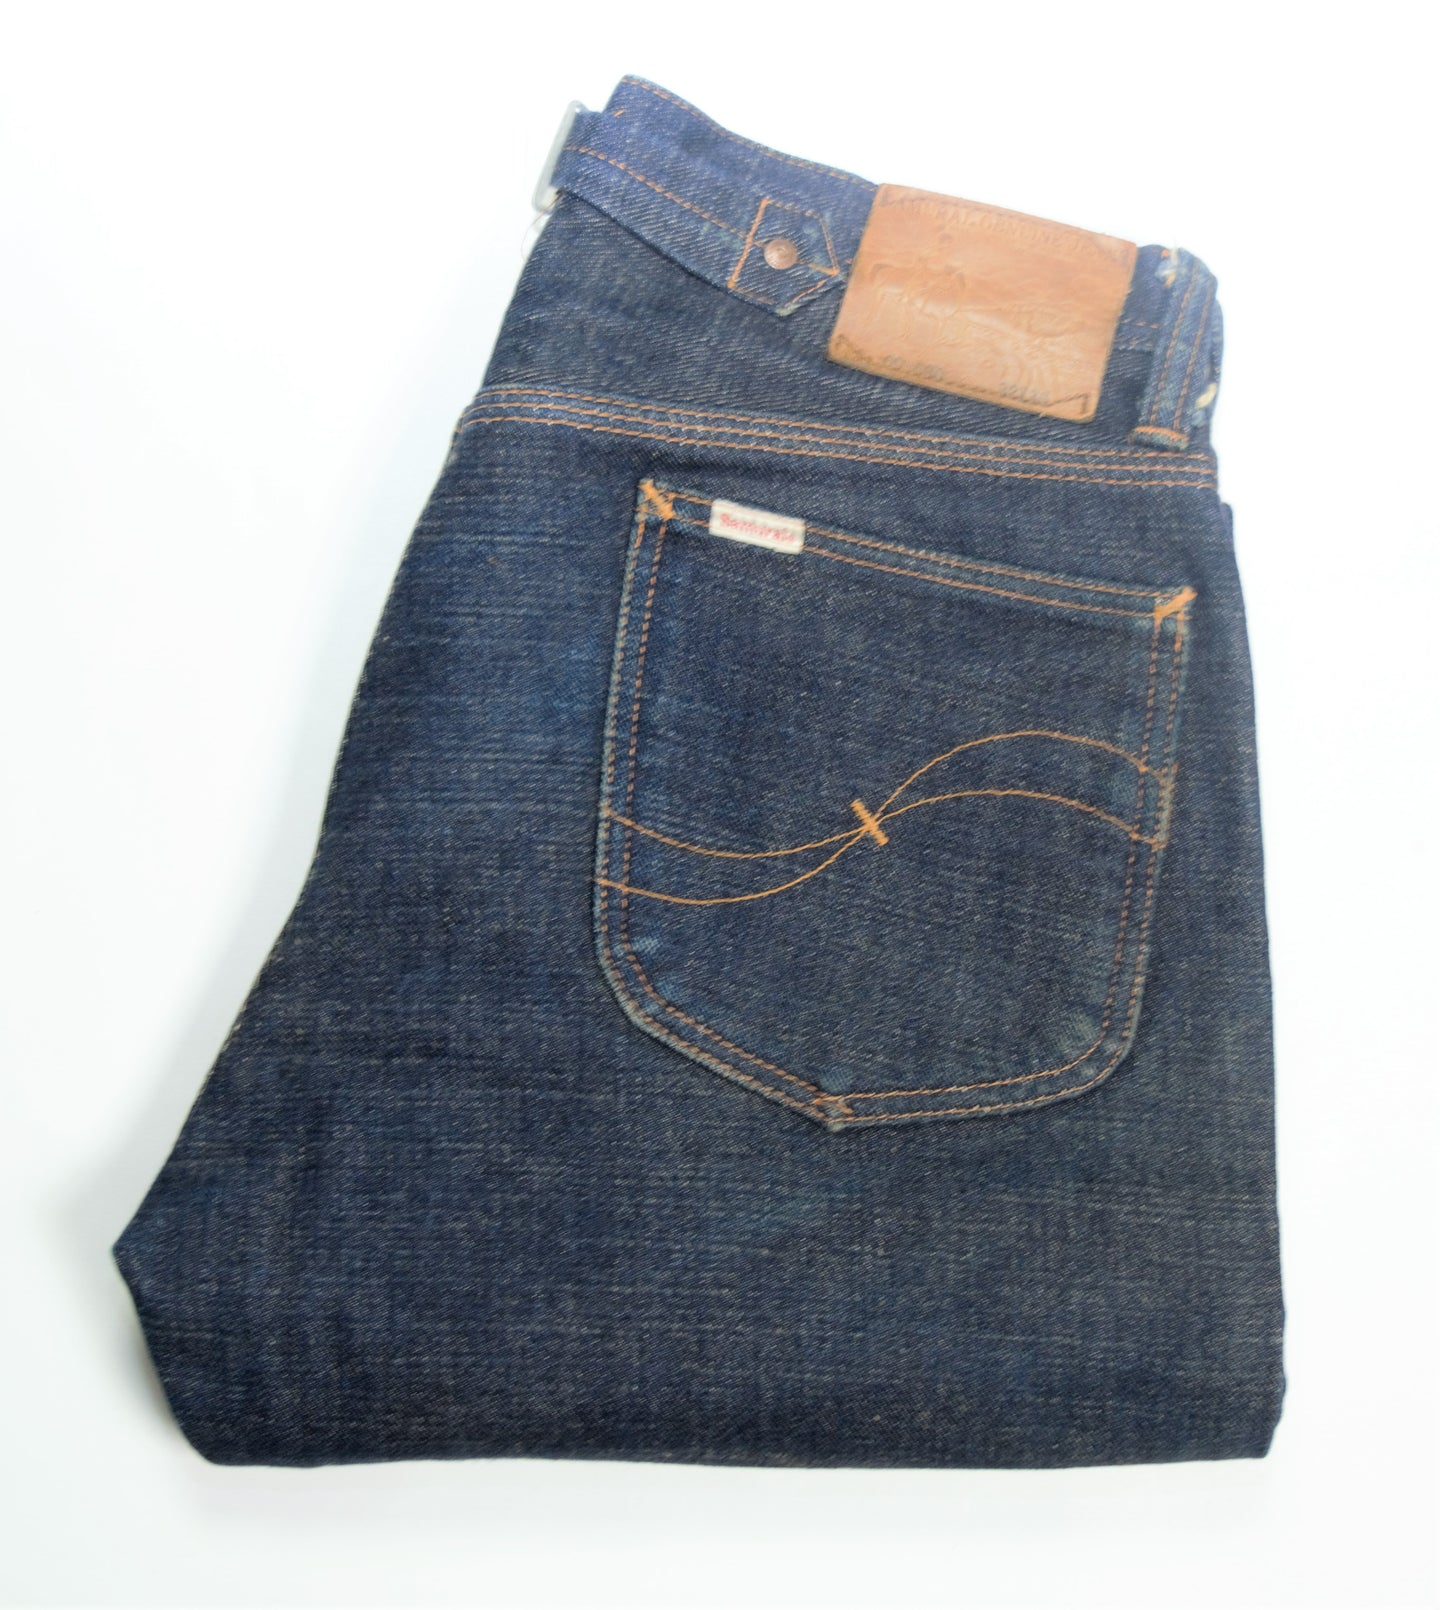 Samurai Jeans - S0130 XJ - Heavyweight Denim - Size 32/36